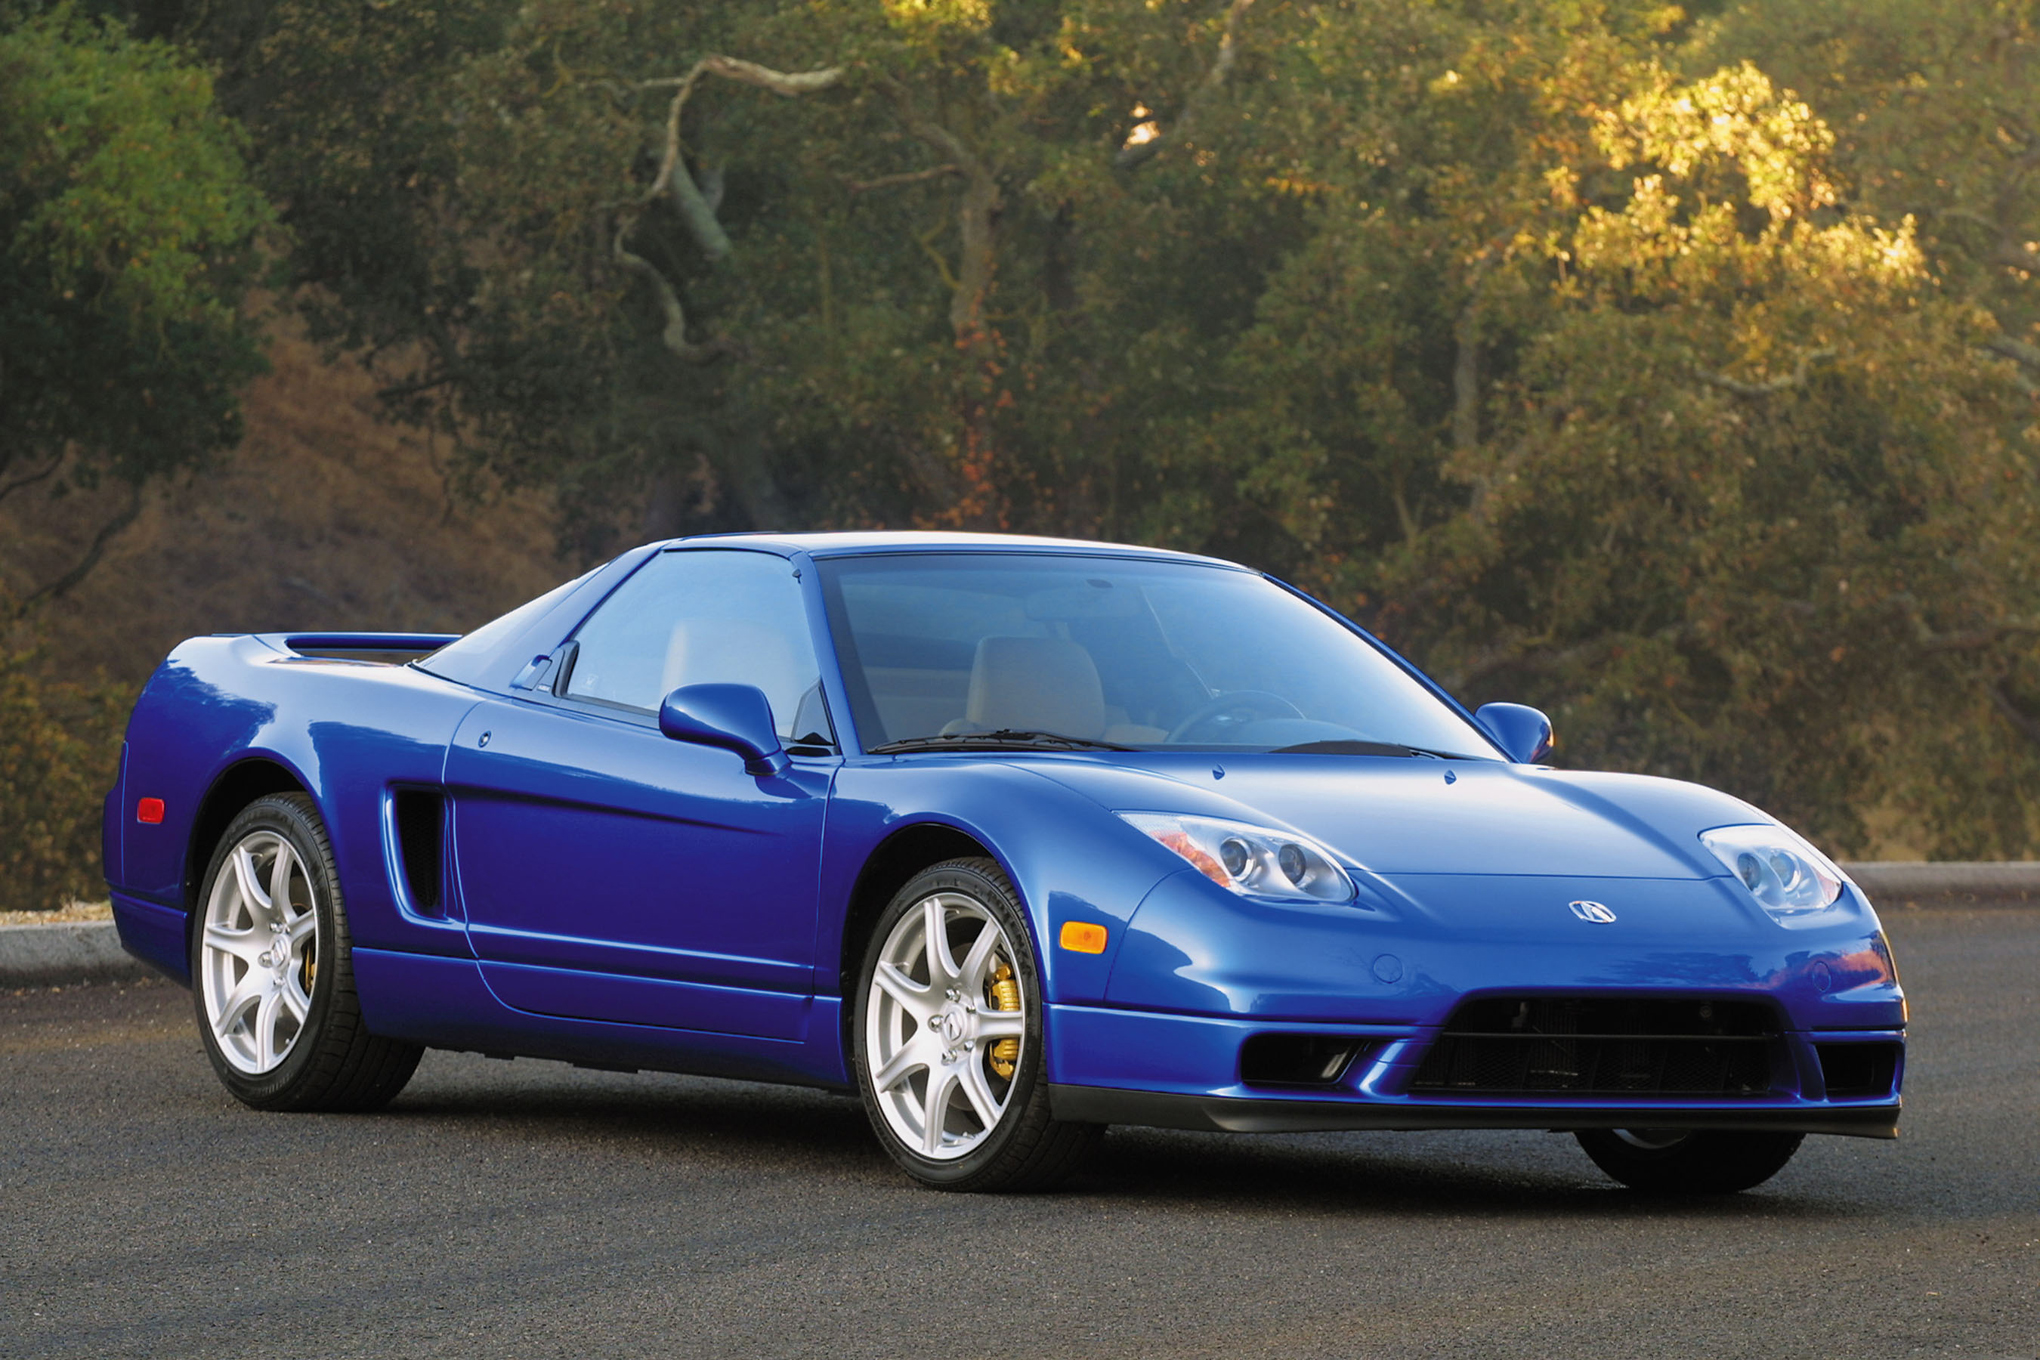 Top 20 Cars Of The Fast And Furious Series